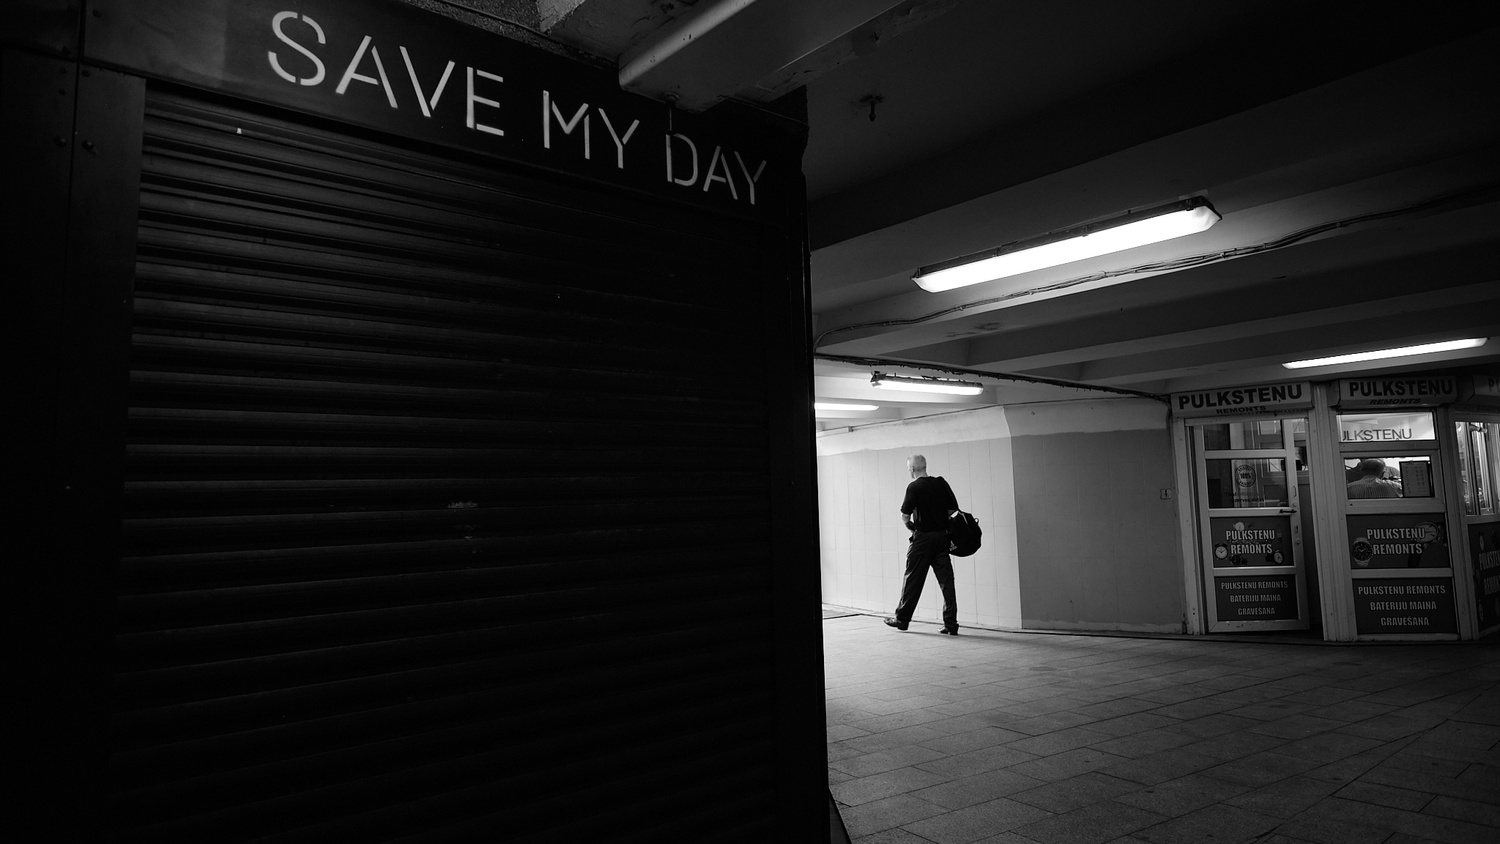 Save My Day by P K